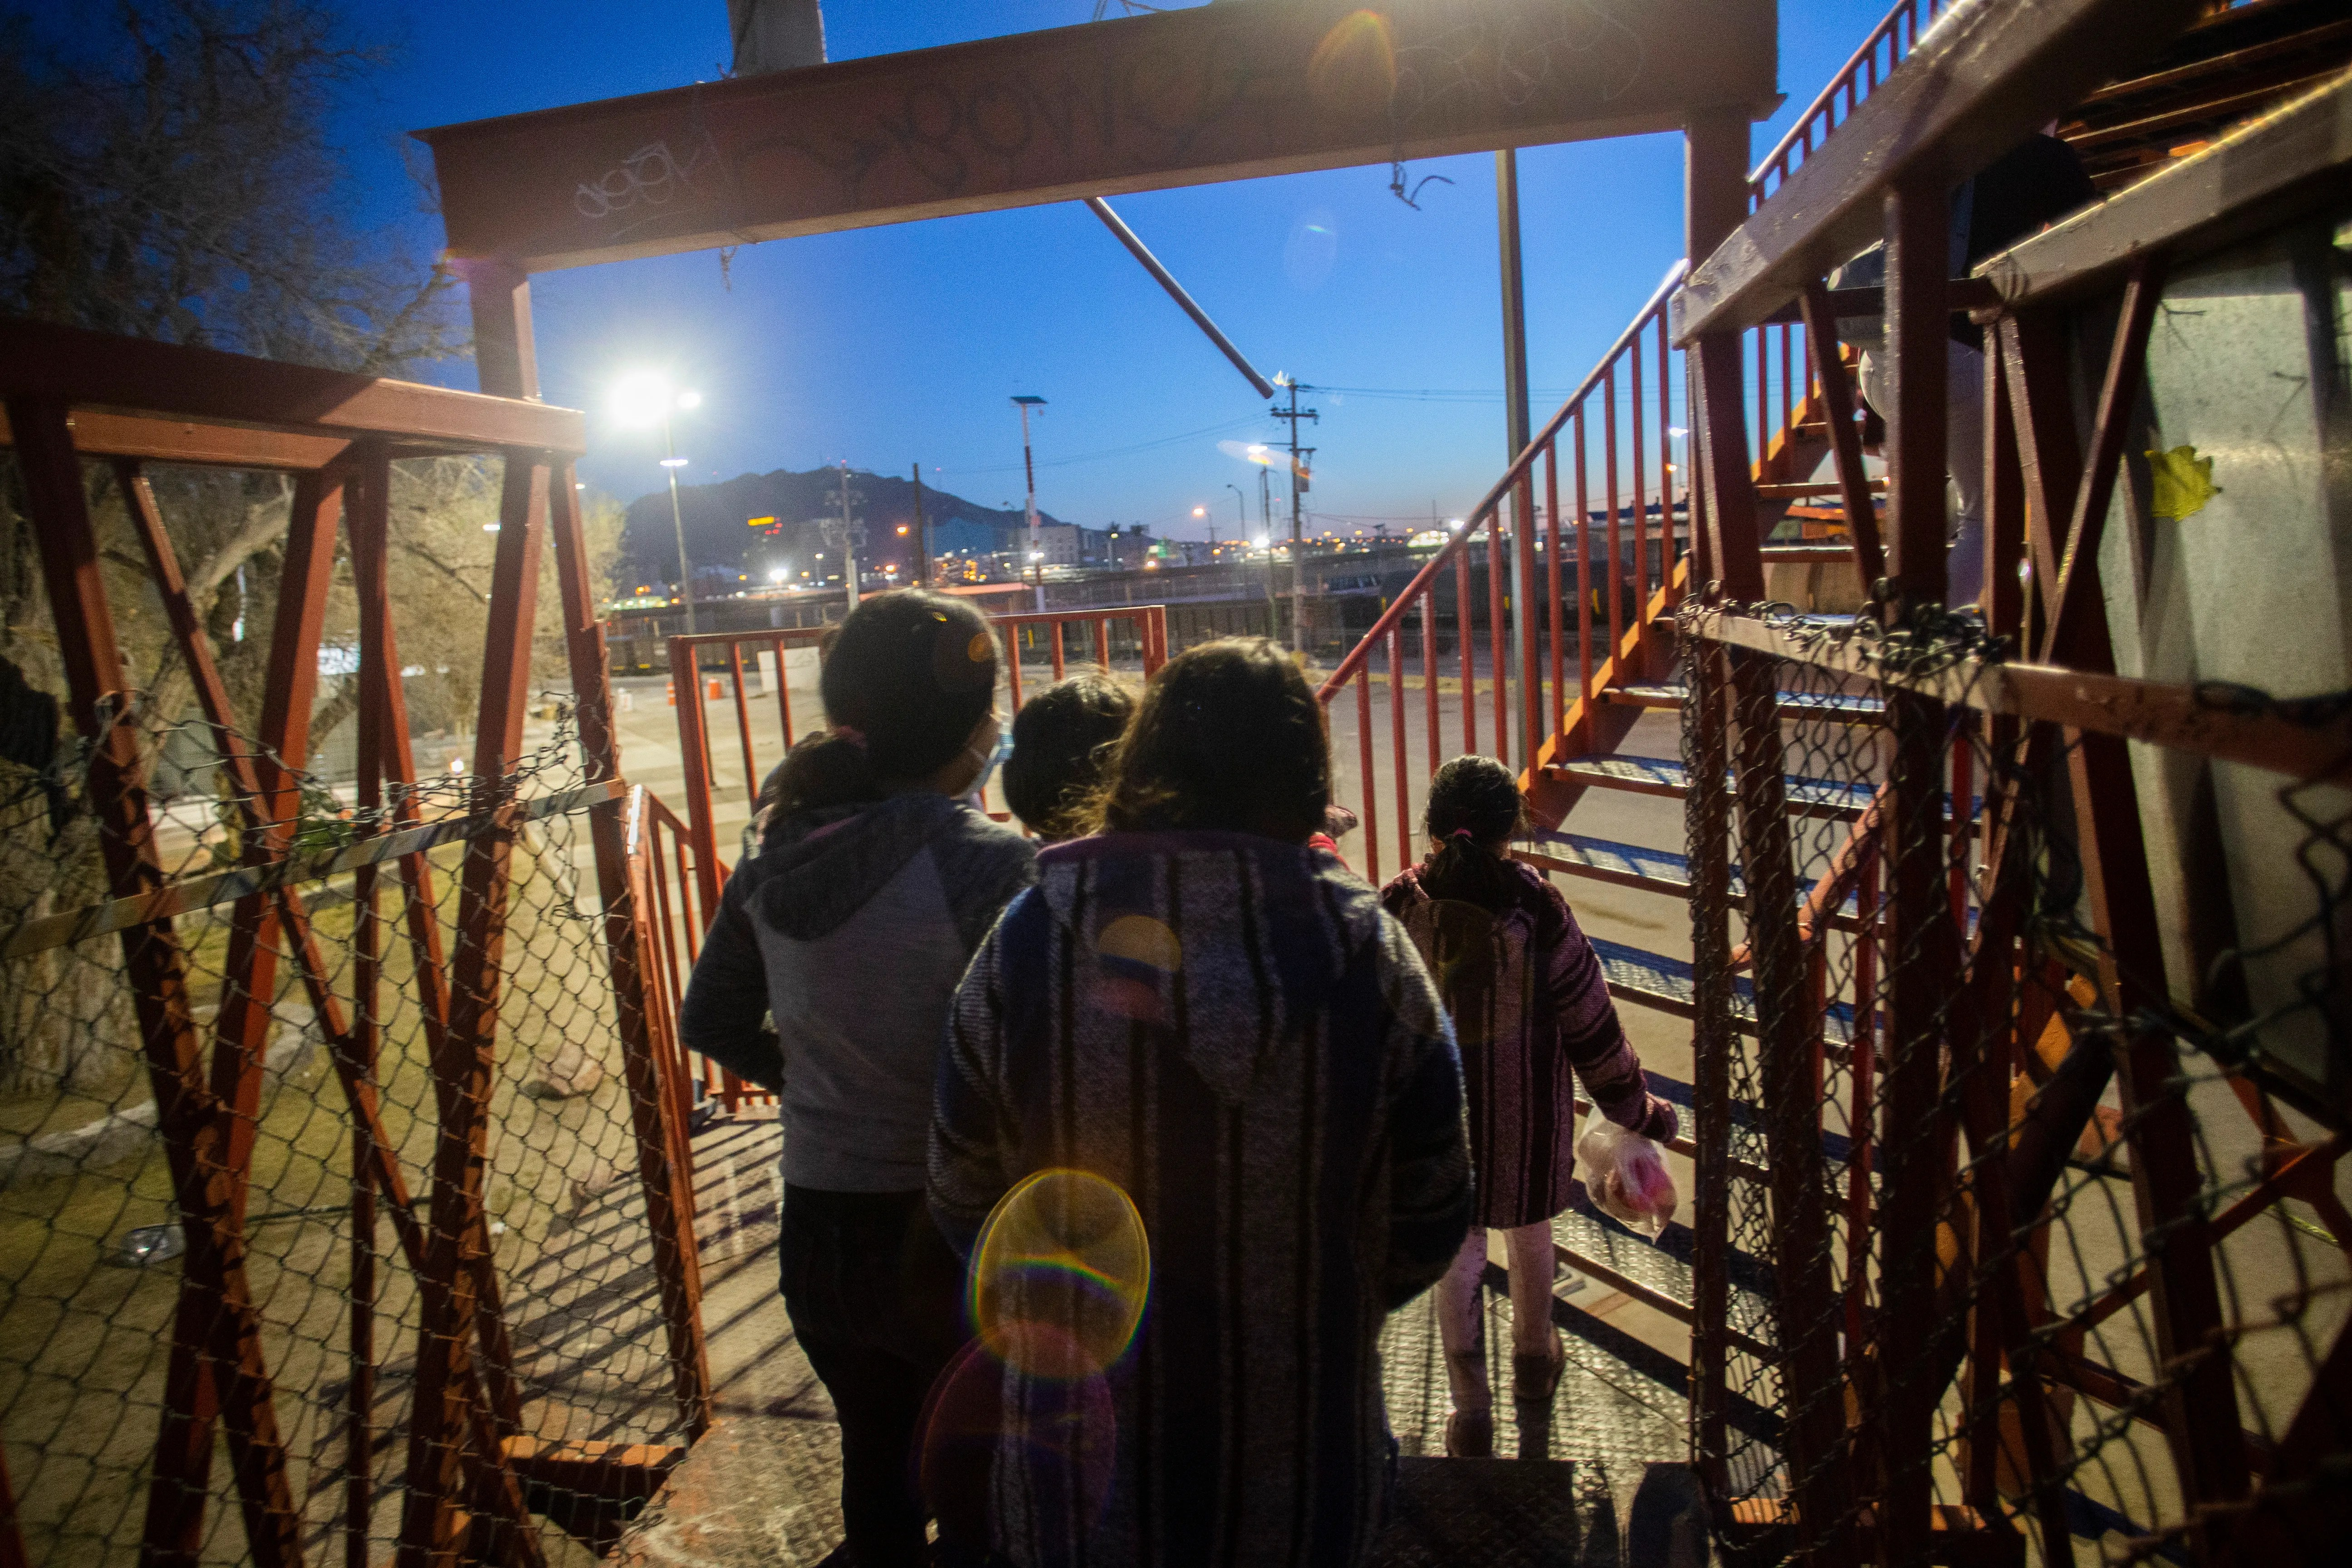 Children and women cross a pedestrian bridge in Juarez, Mexico, on March 11 after being returned to Mexico from the USA. Advocates say this is when immigrants are particularly vulnerable to danger.